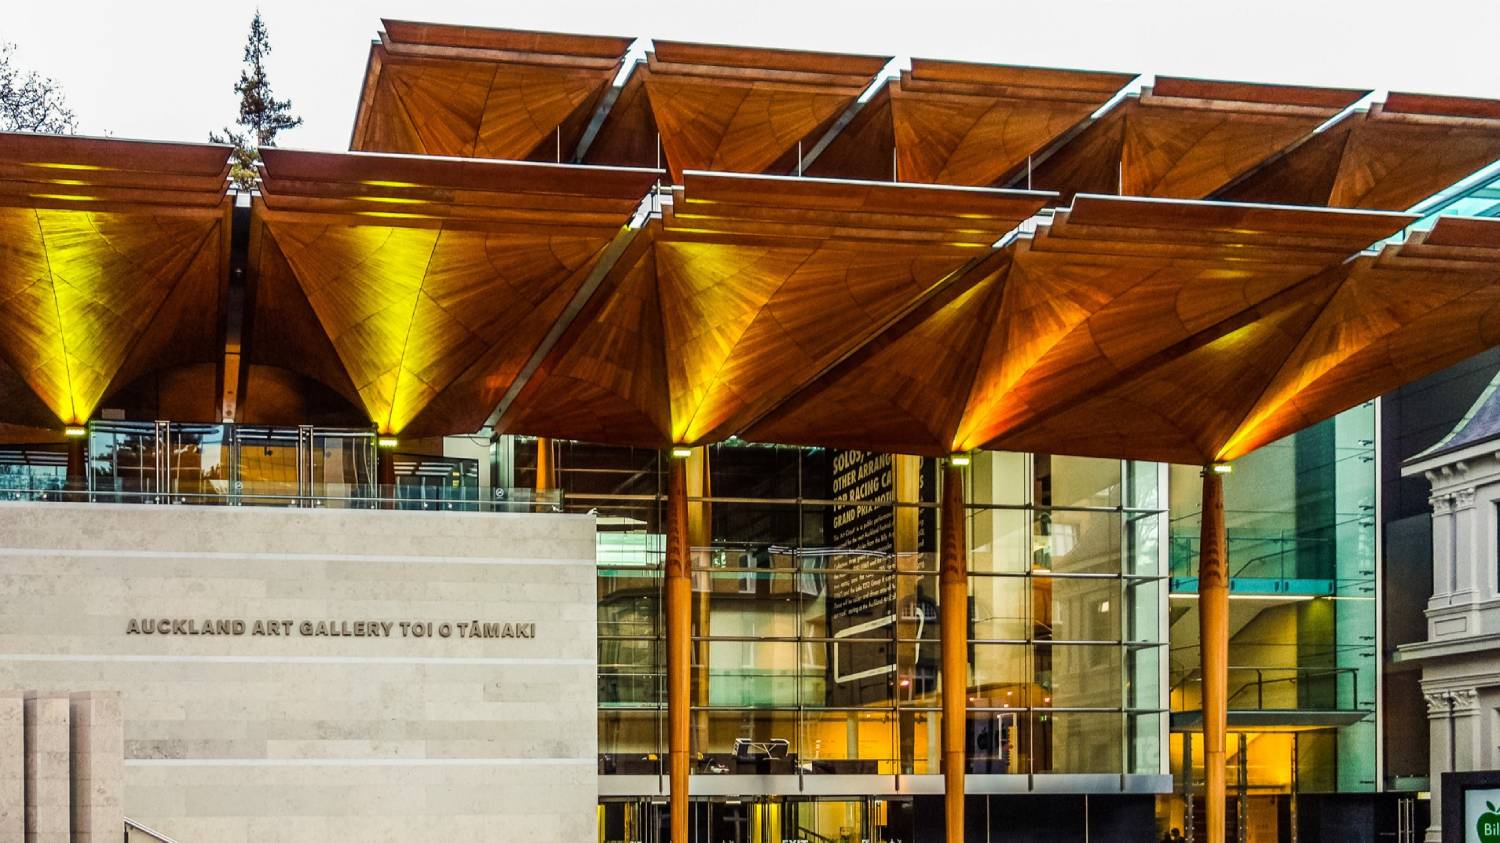 Auckland Art Gallery - Things To Do In Auckland